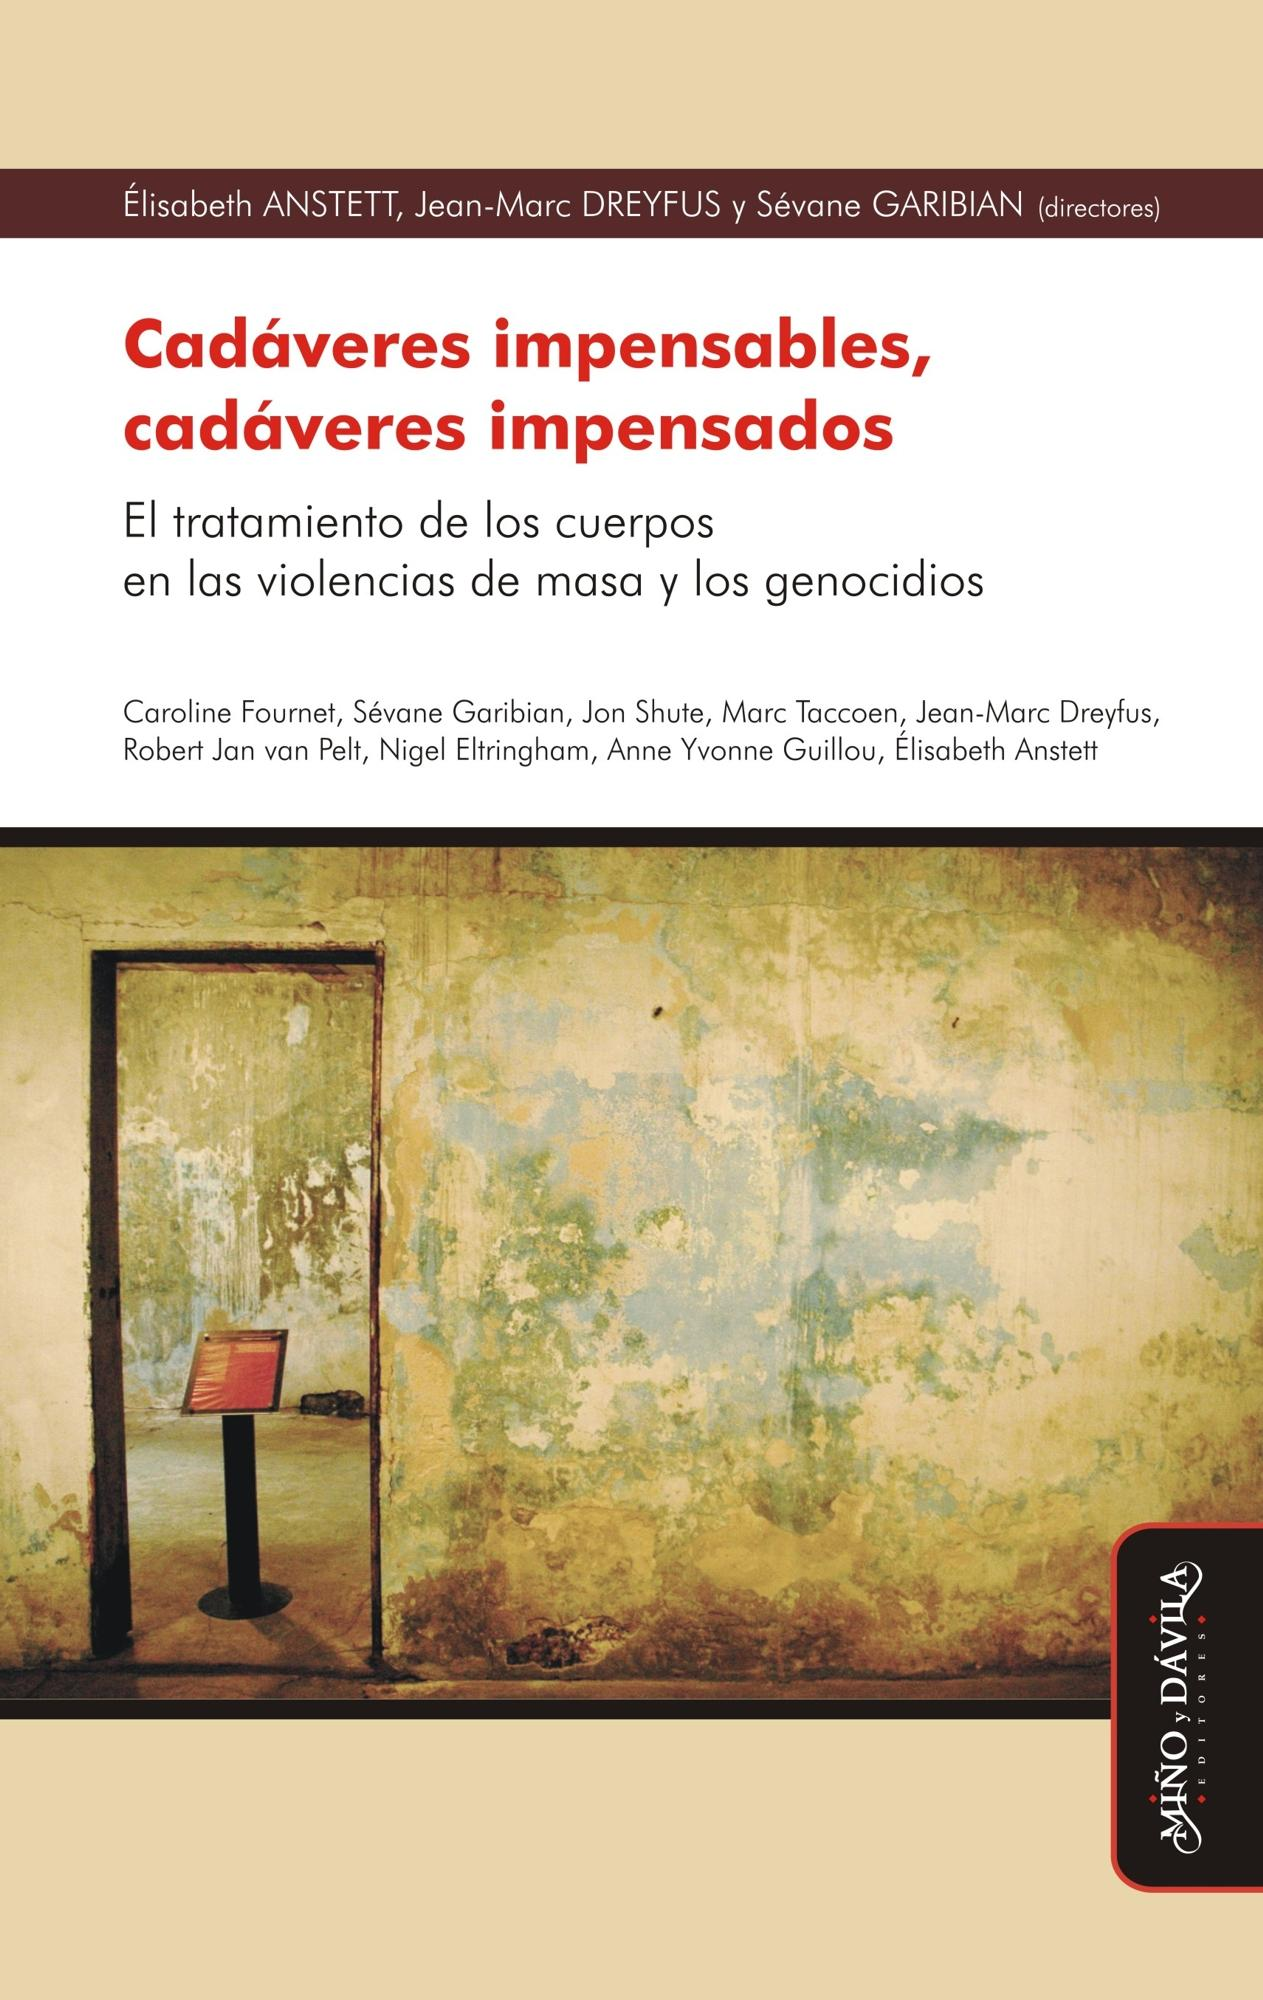 Cadáveres impensables, cadáveres impensados